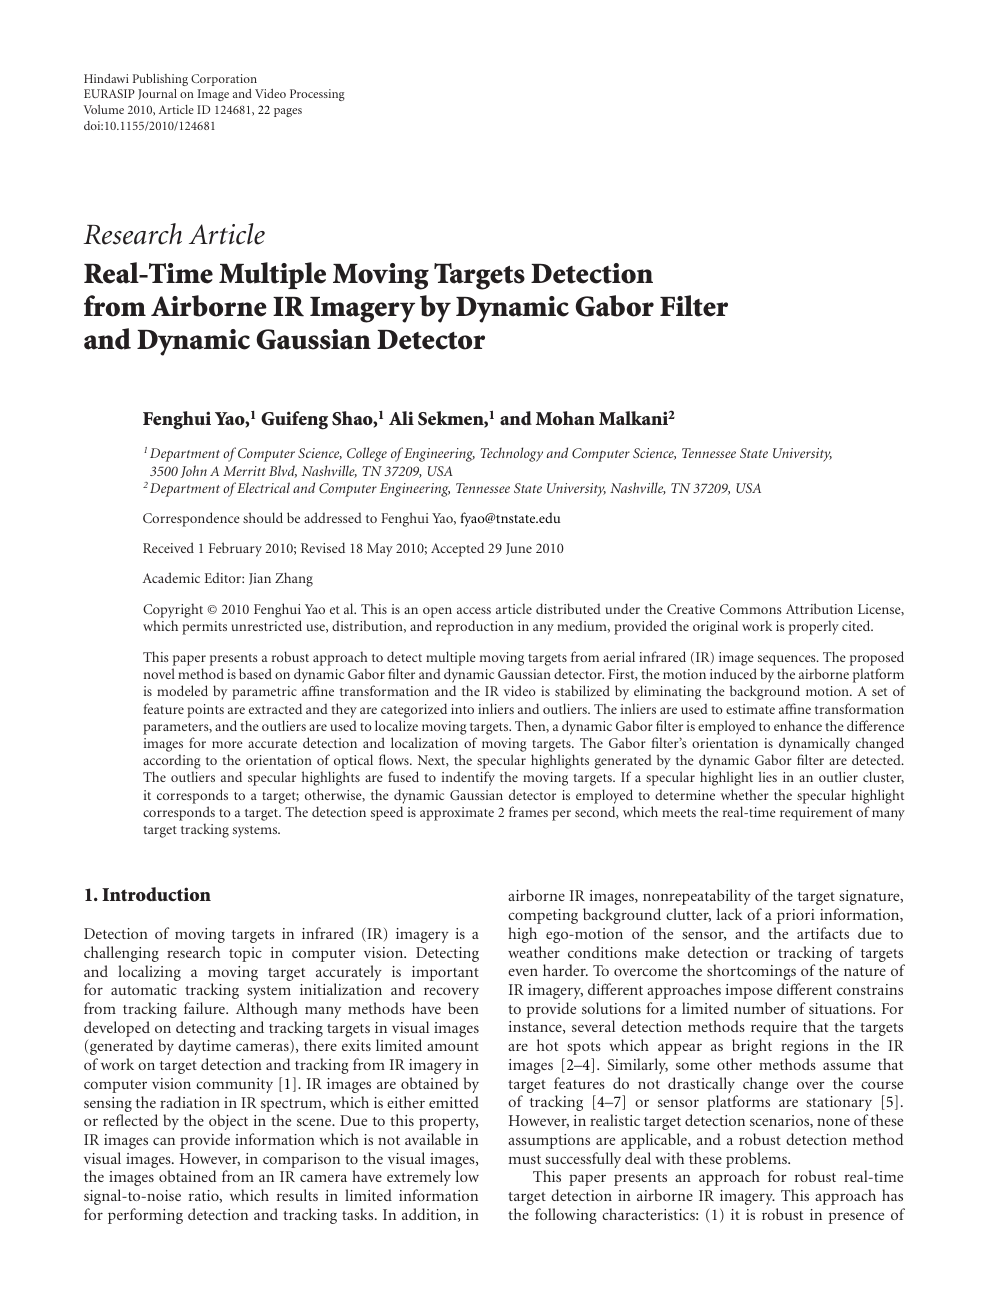 Real-Time Multiple Moving Targets Detection from Airborne IR Imagery